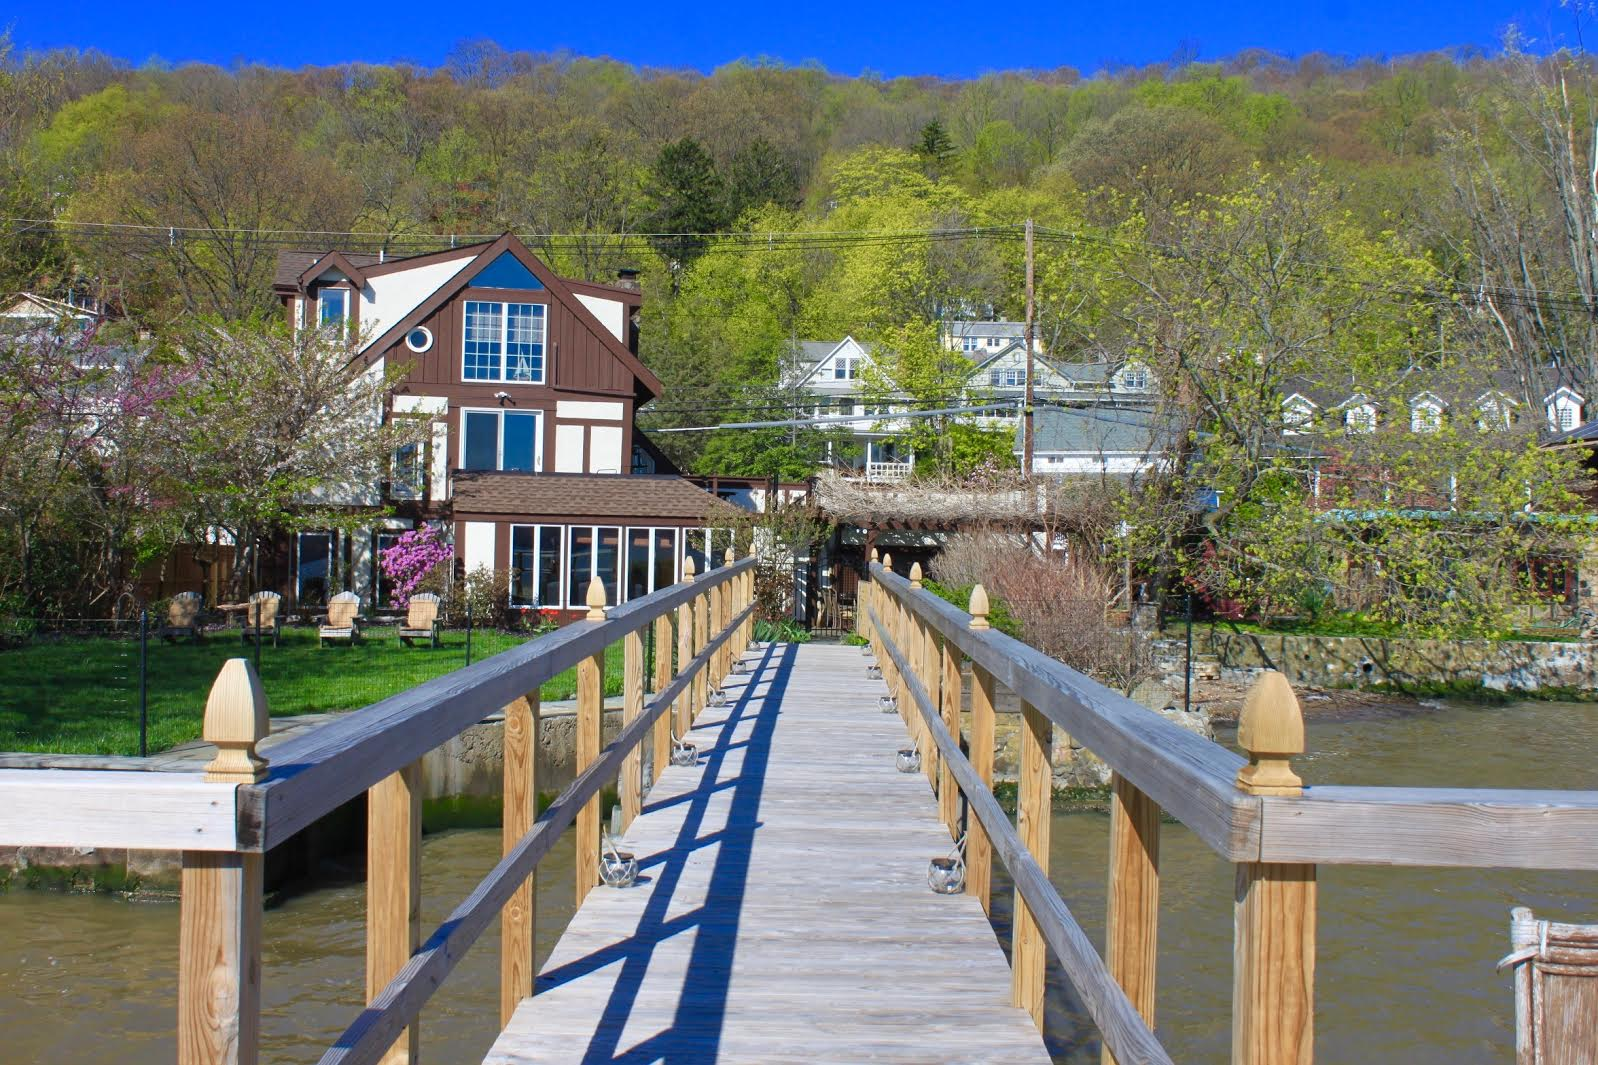 Single Family Home for Sale at SoHo-on-Hudson 737 Piermont Ave. Piermont, New York 10968 United States